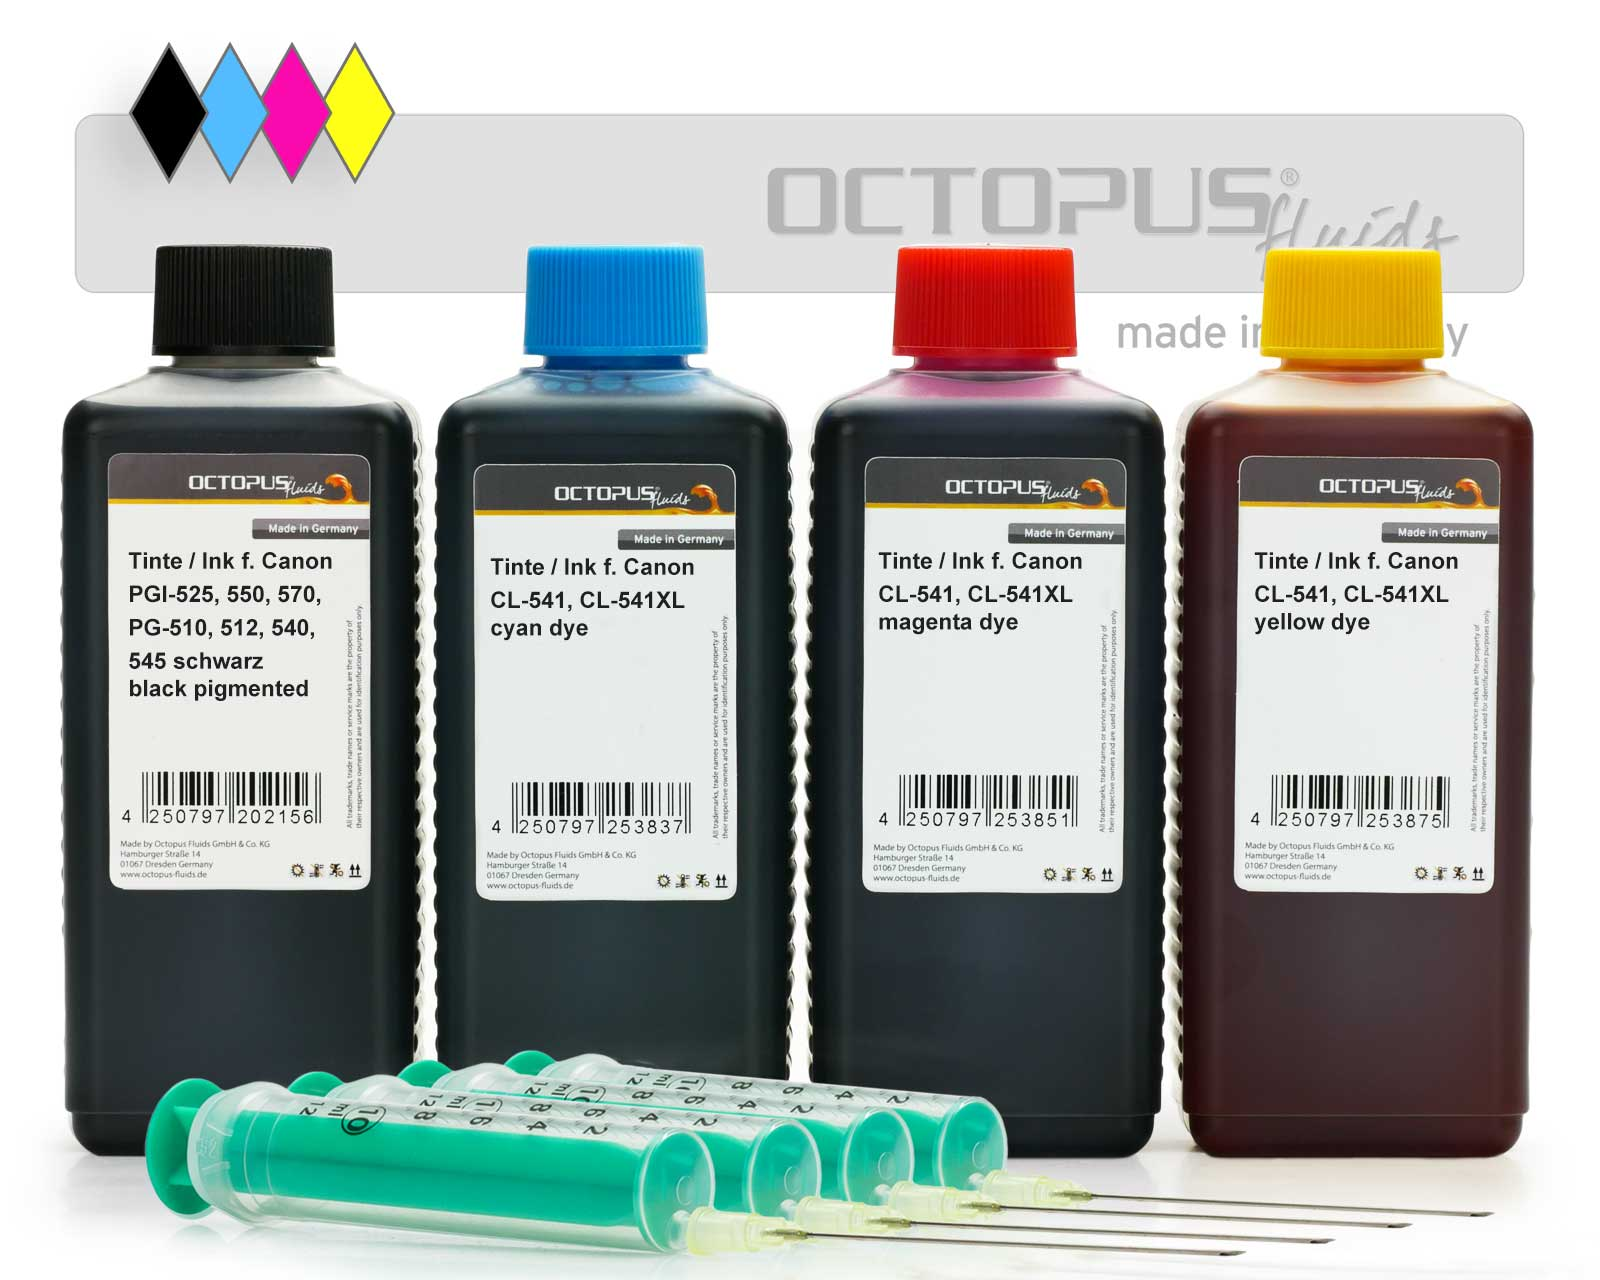 Refill ink set for Canon PG-540, CL-541 cartridges